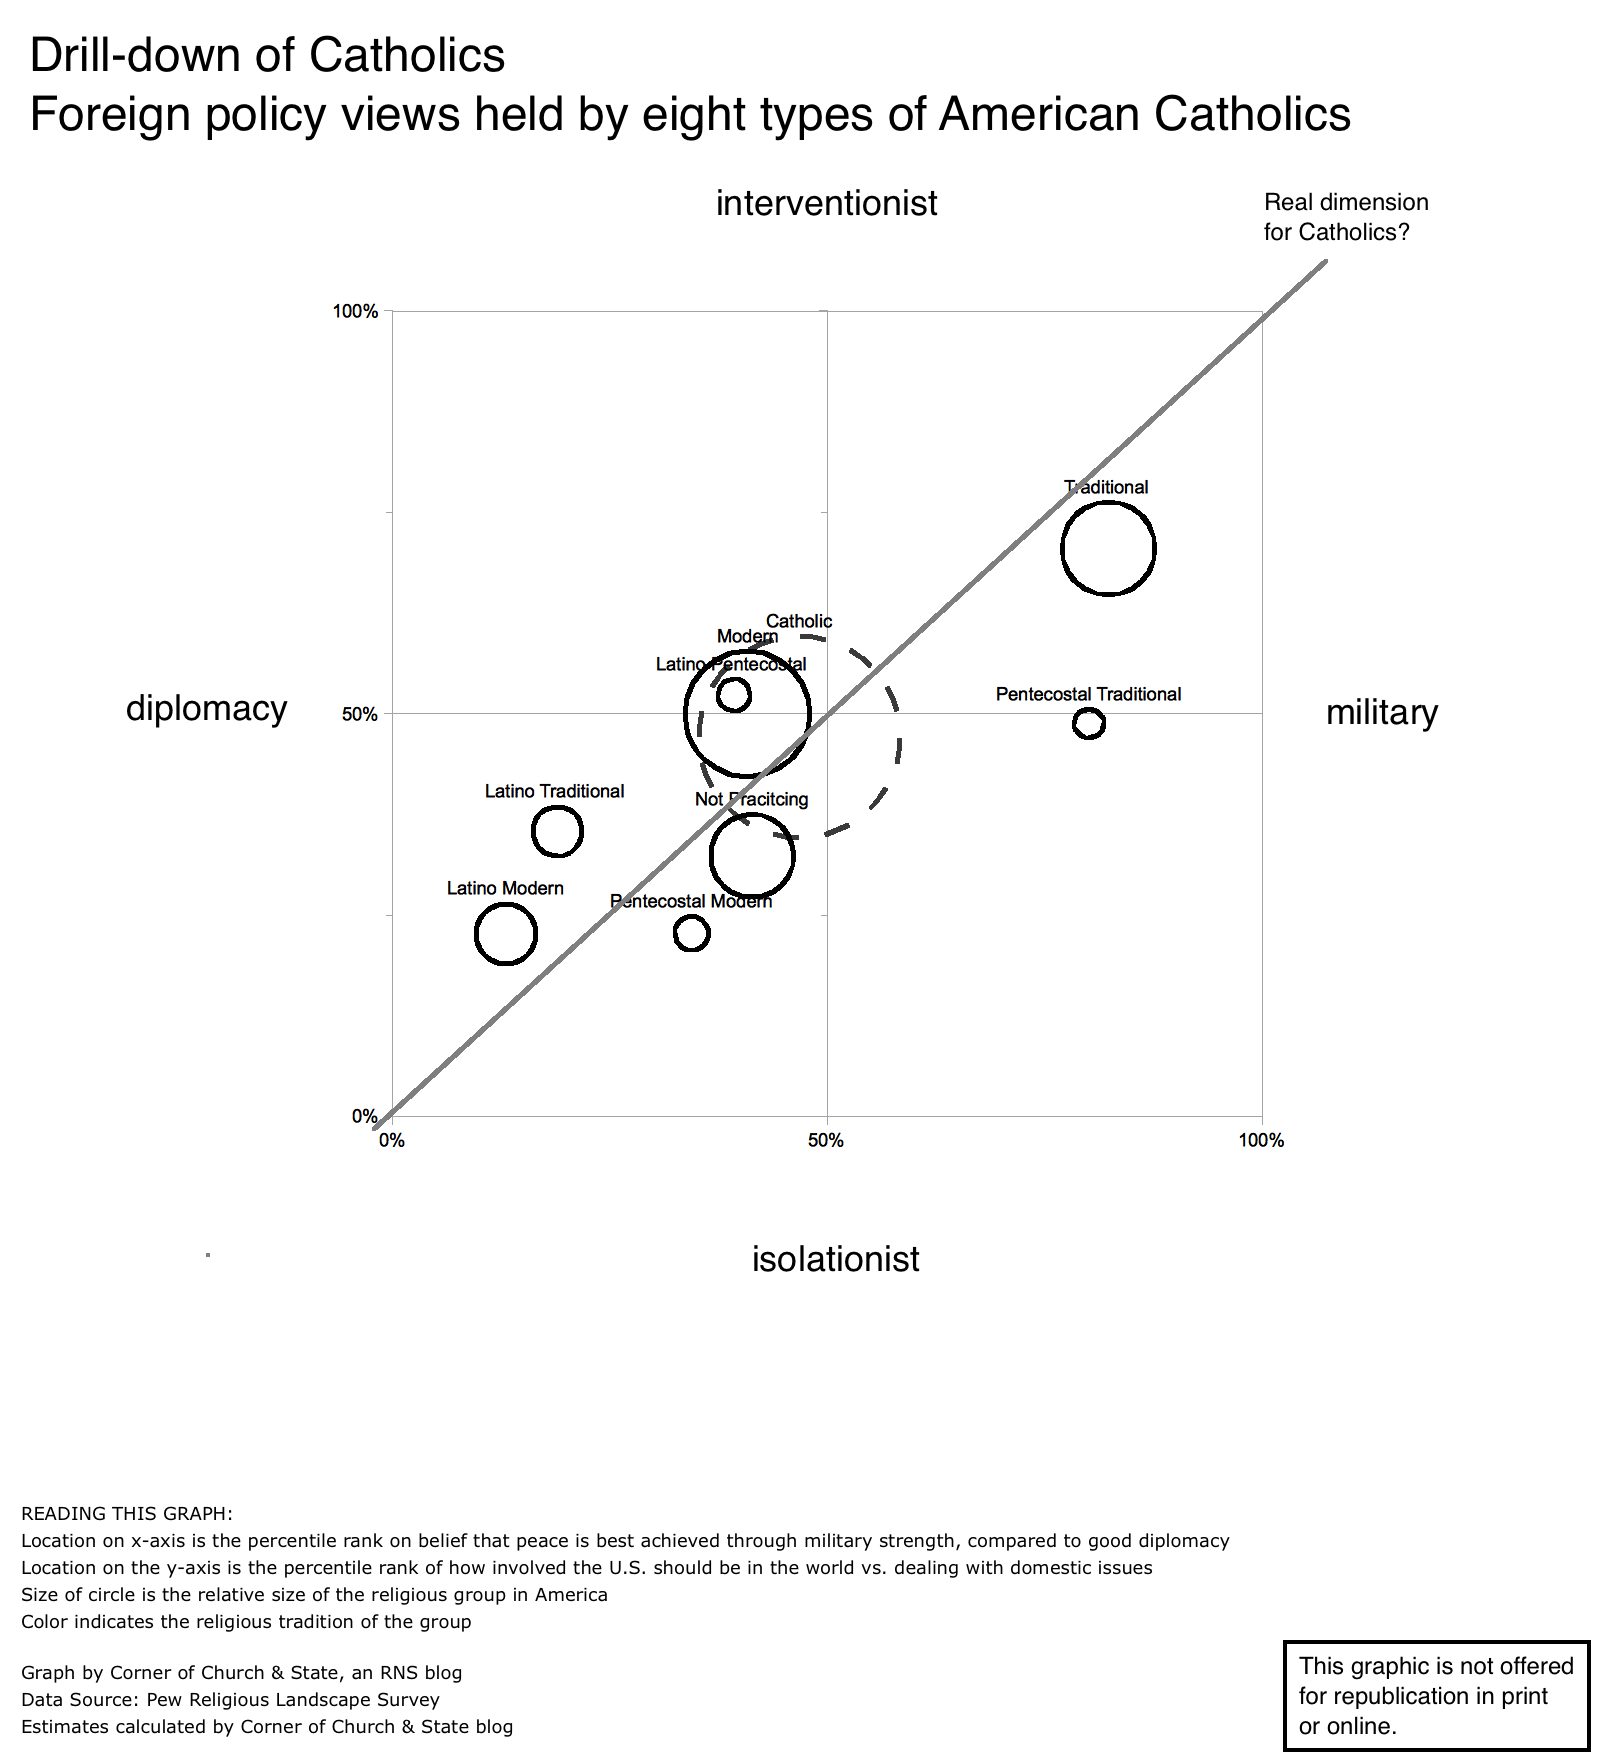 Drill-down of Catholics' opinion on foreign policy